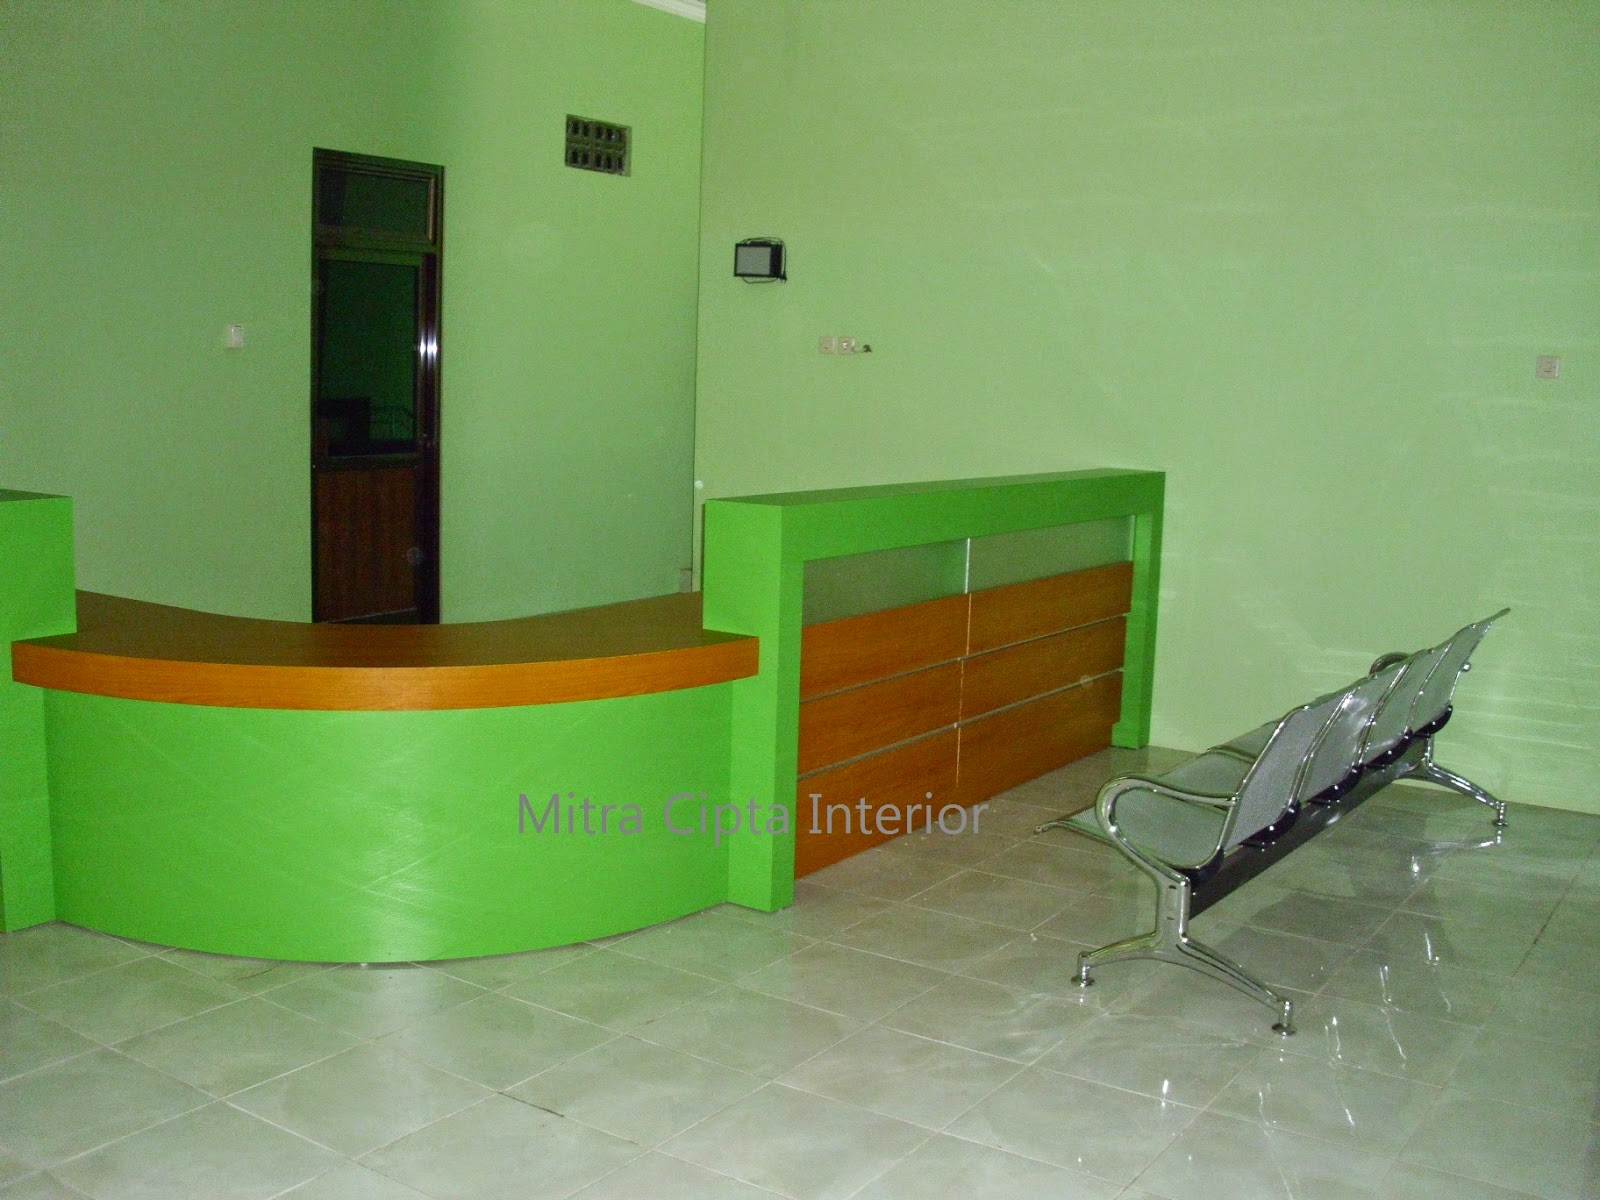 Interior Rumah Sakit Interior Design And Furniture Jogja Mitra Cipta Interior